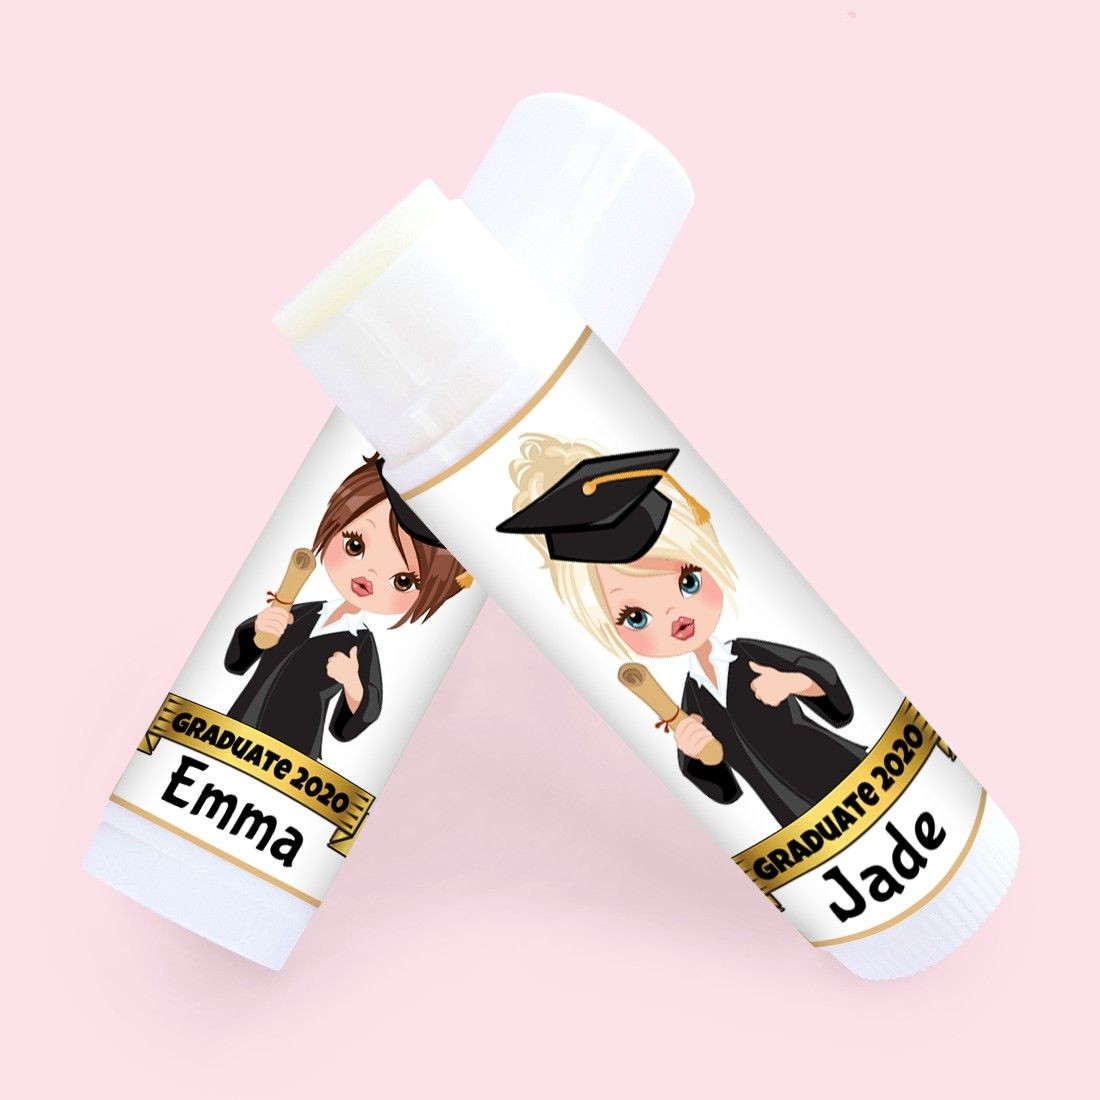 College Gift Graduate 2020 Graduation Gifts For Her Graduation Gift Lip Balm